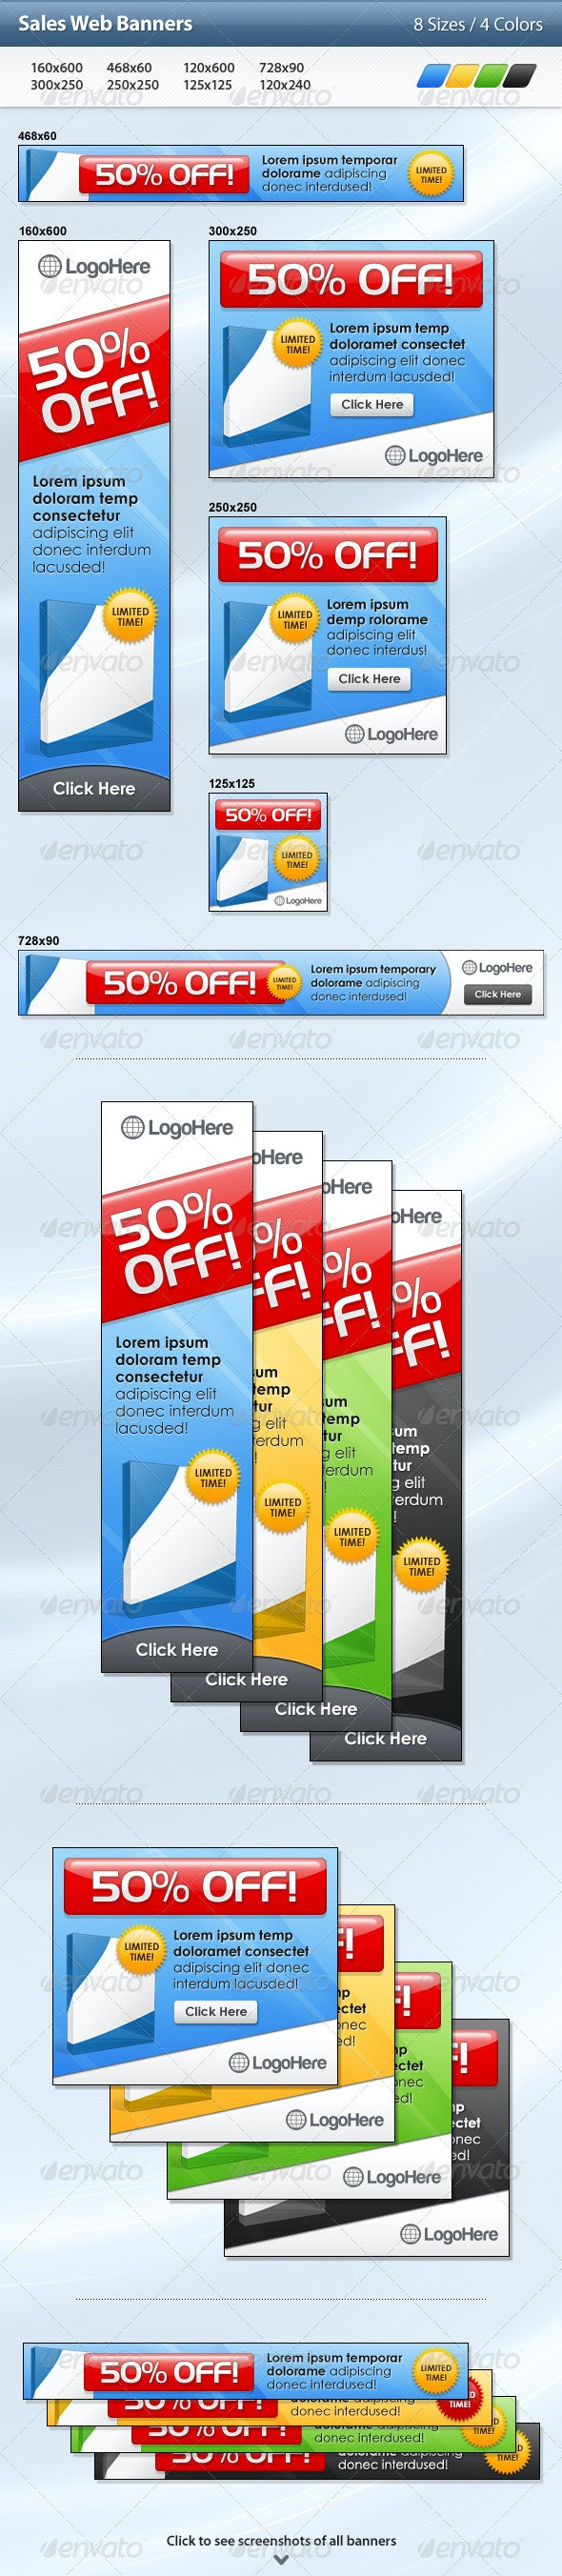 Sales Web Banners